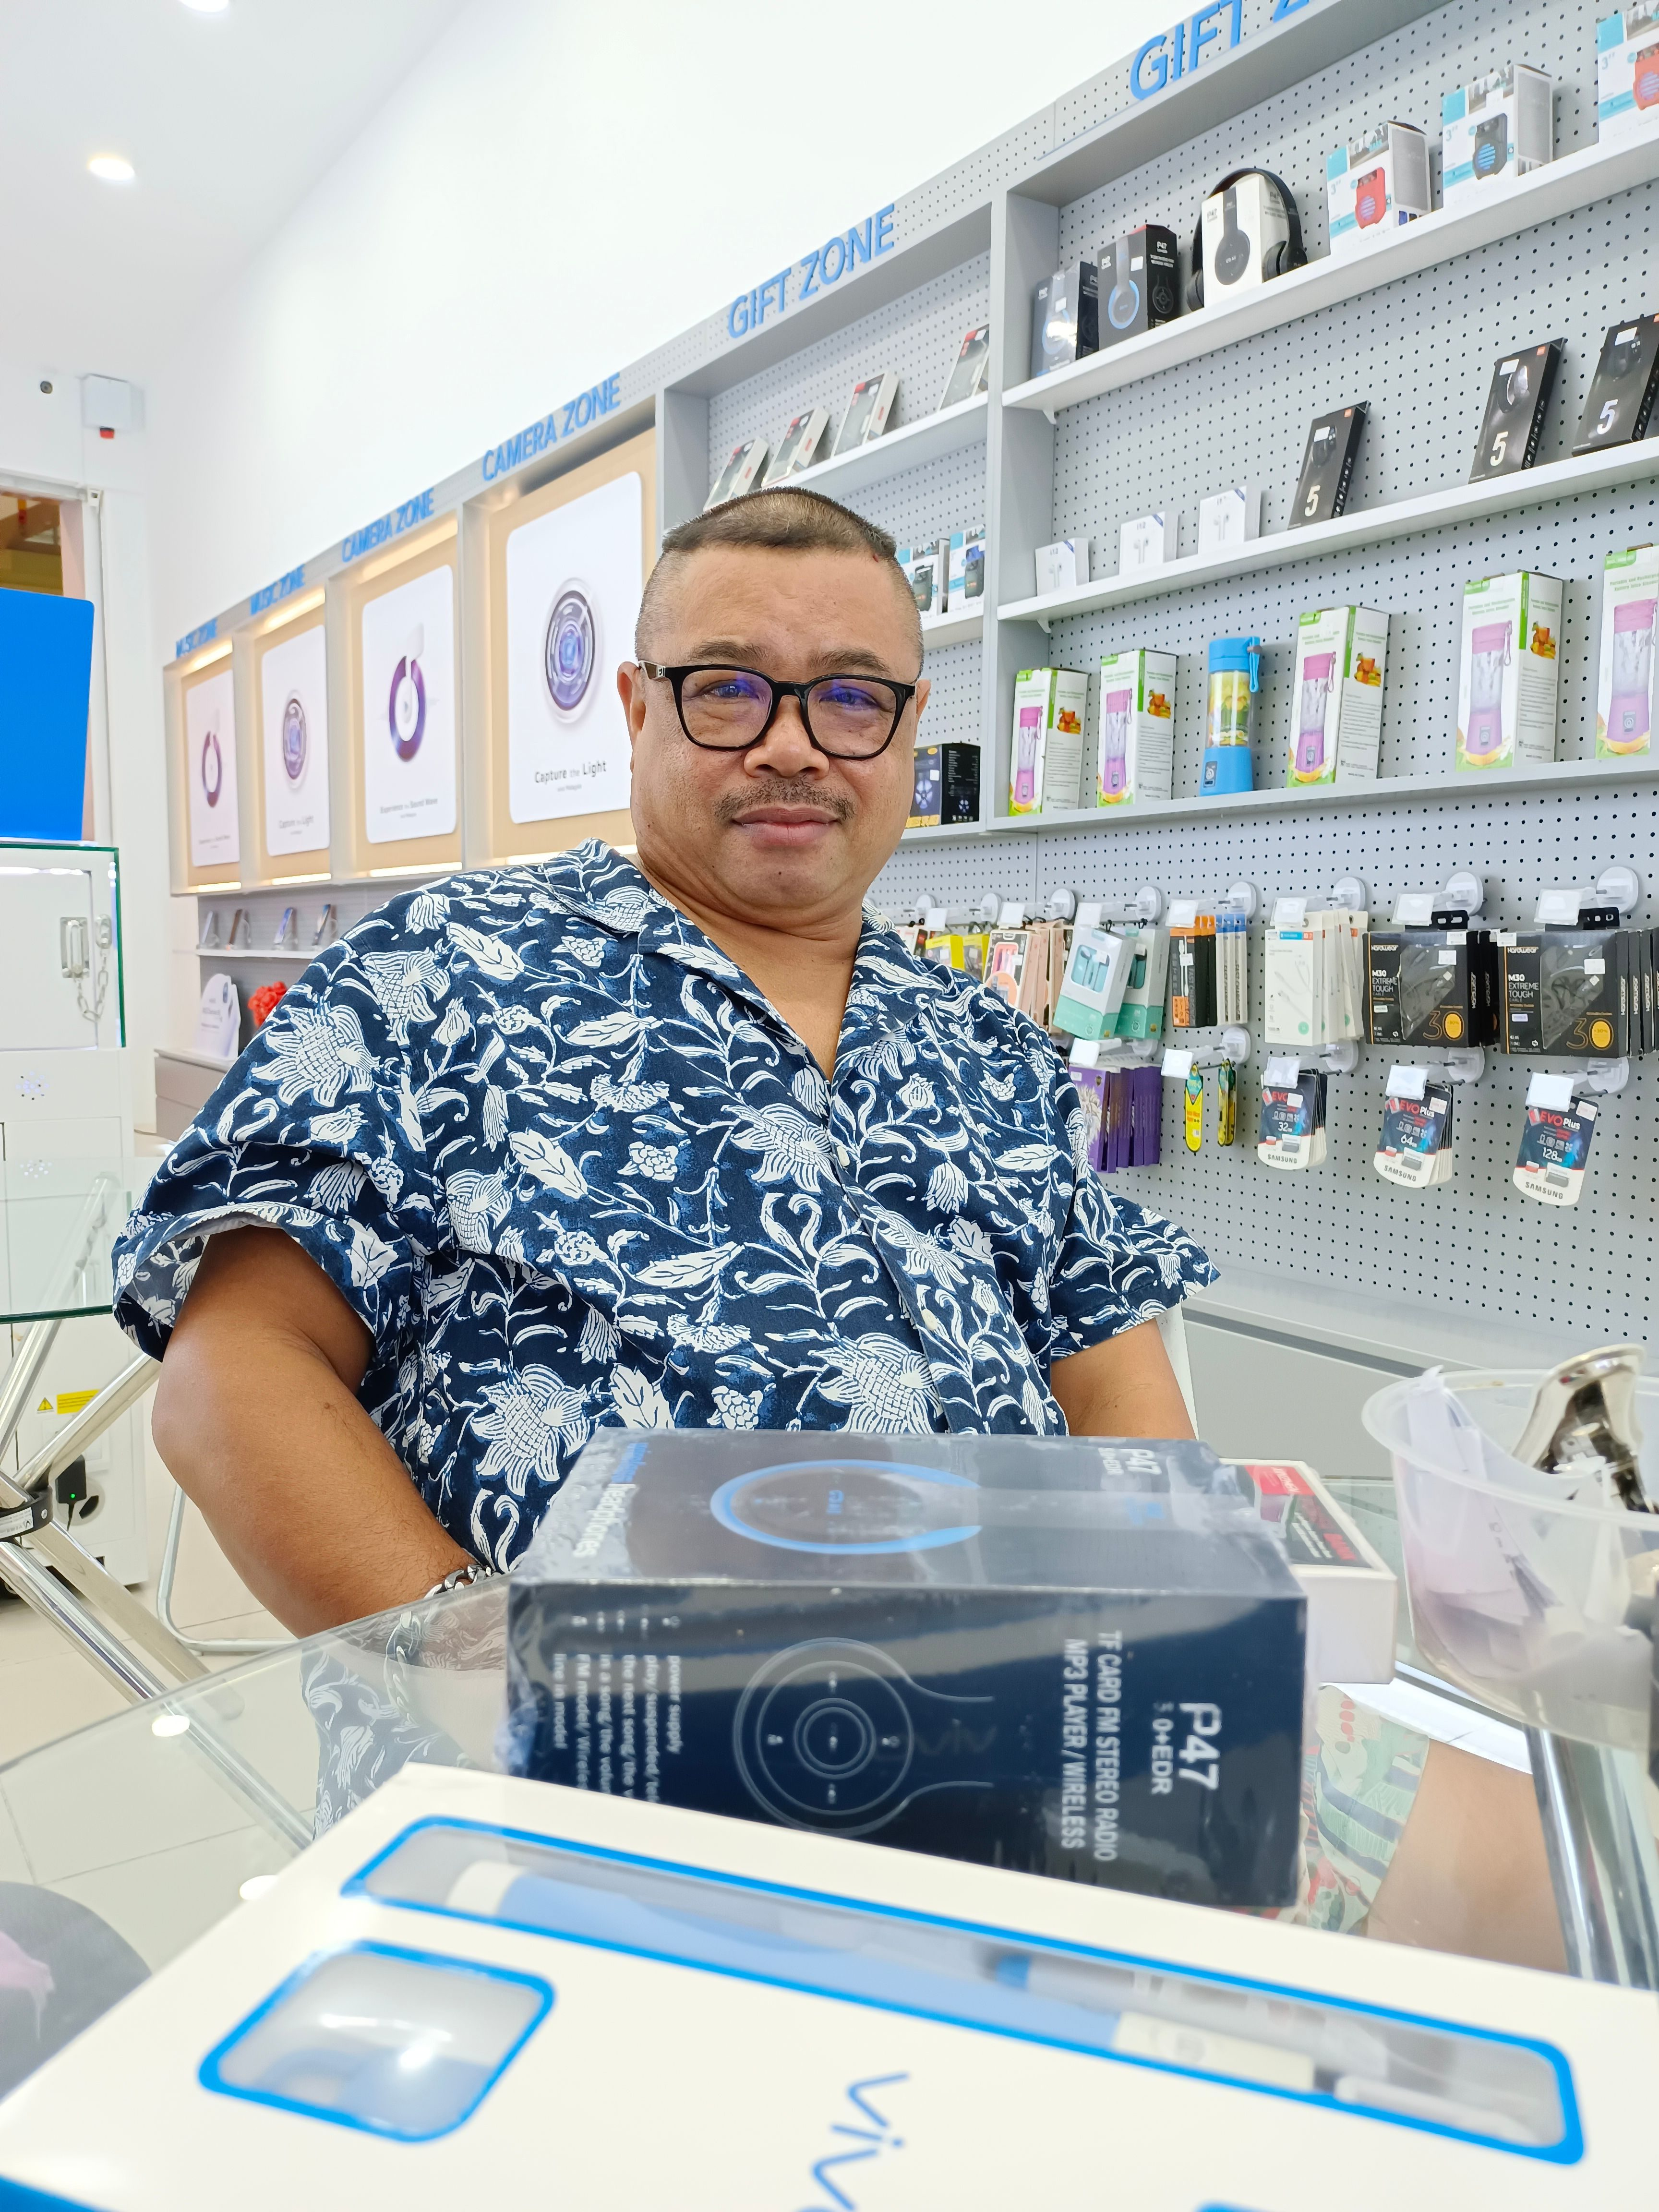 Alias Abdul Hamid poses in an electronic store. He has dark rimmed glasses, short hair and is wearing a floral short sleeved shirt.